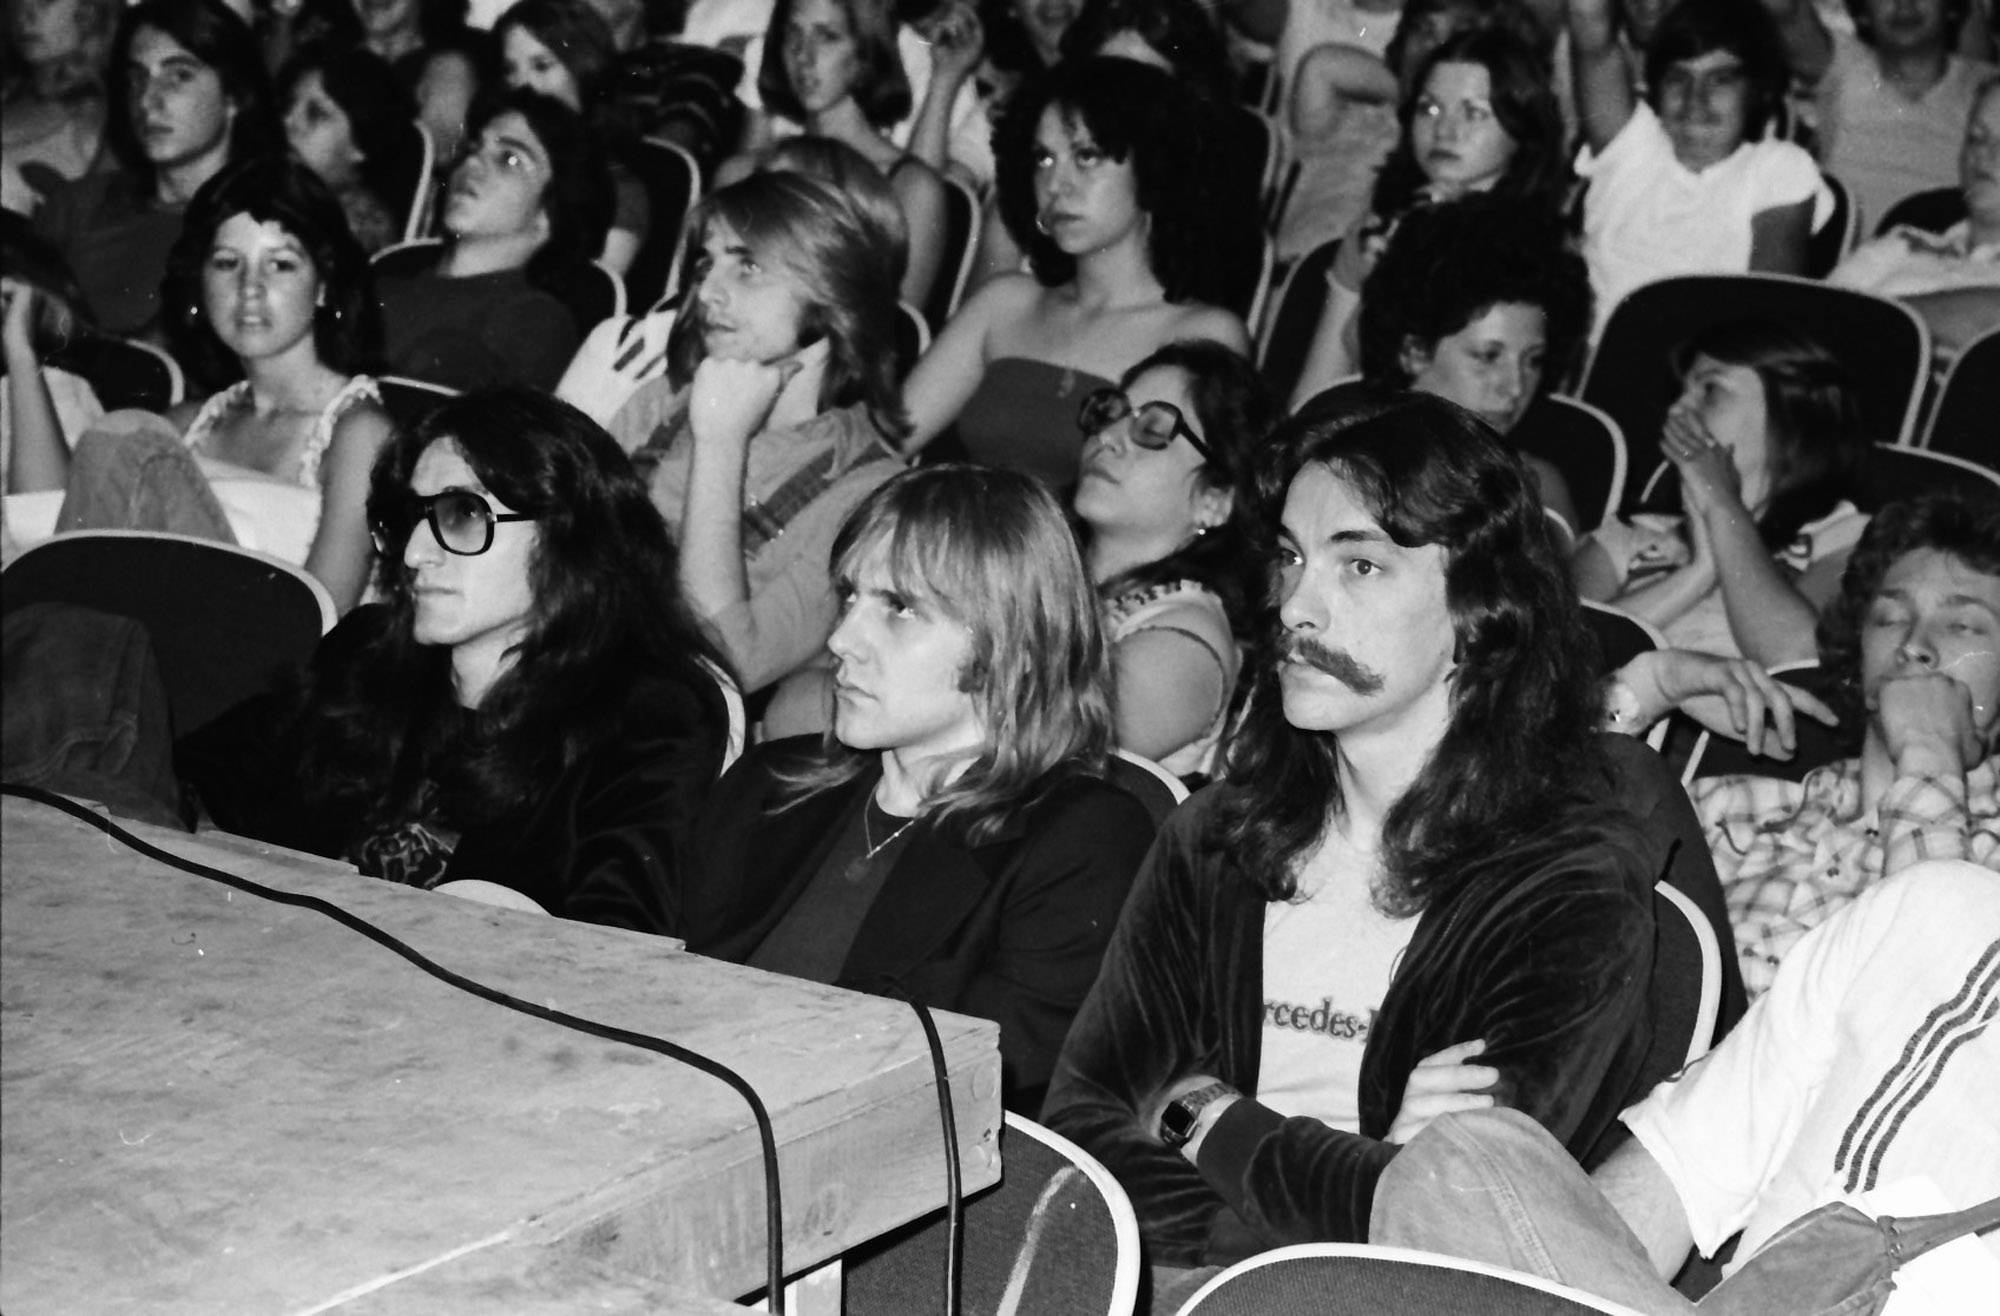 Canadian rock band Rush visited Hersey High School in Arlington Heights 40 years ago. They did not perform but answered questions from the Hersey students after watching a slideshow, according to Circus Magazine in 1977. Rush is known for their complex musicianship and are still performing and recording today. From left in the front row are vocalist Geddy Lee, guitarist Alex Lifeson and percussionist Neil Peart.